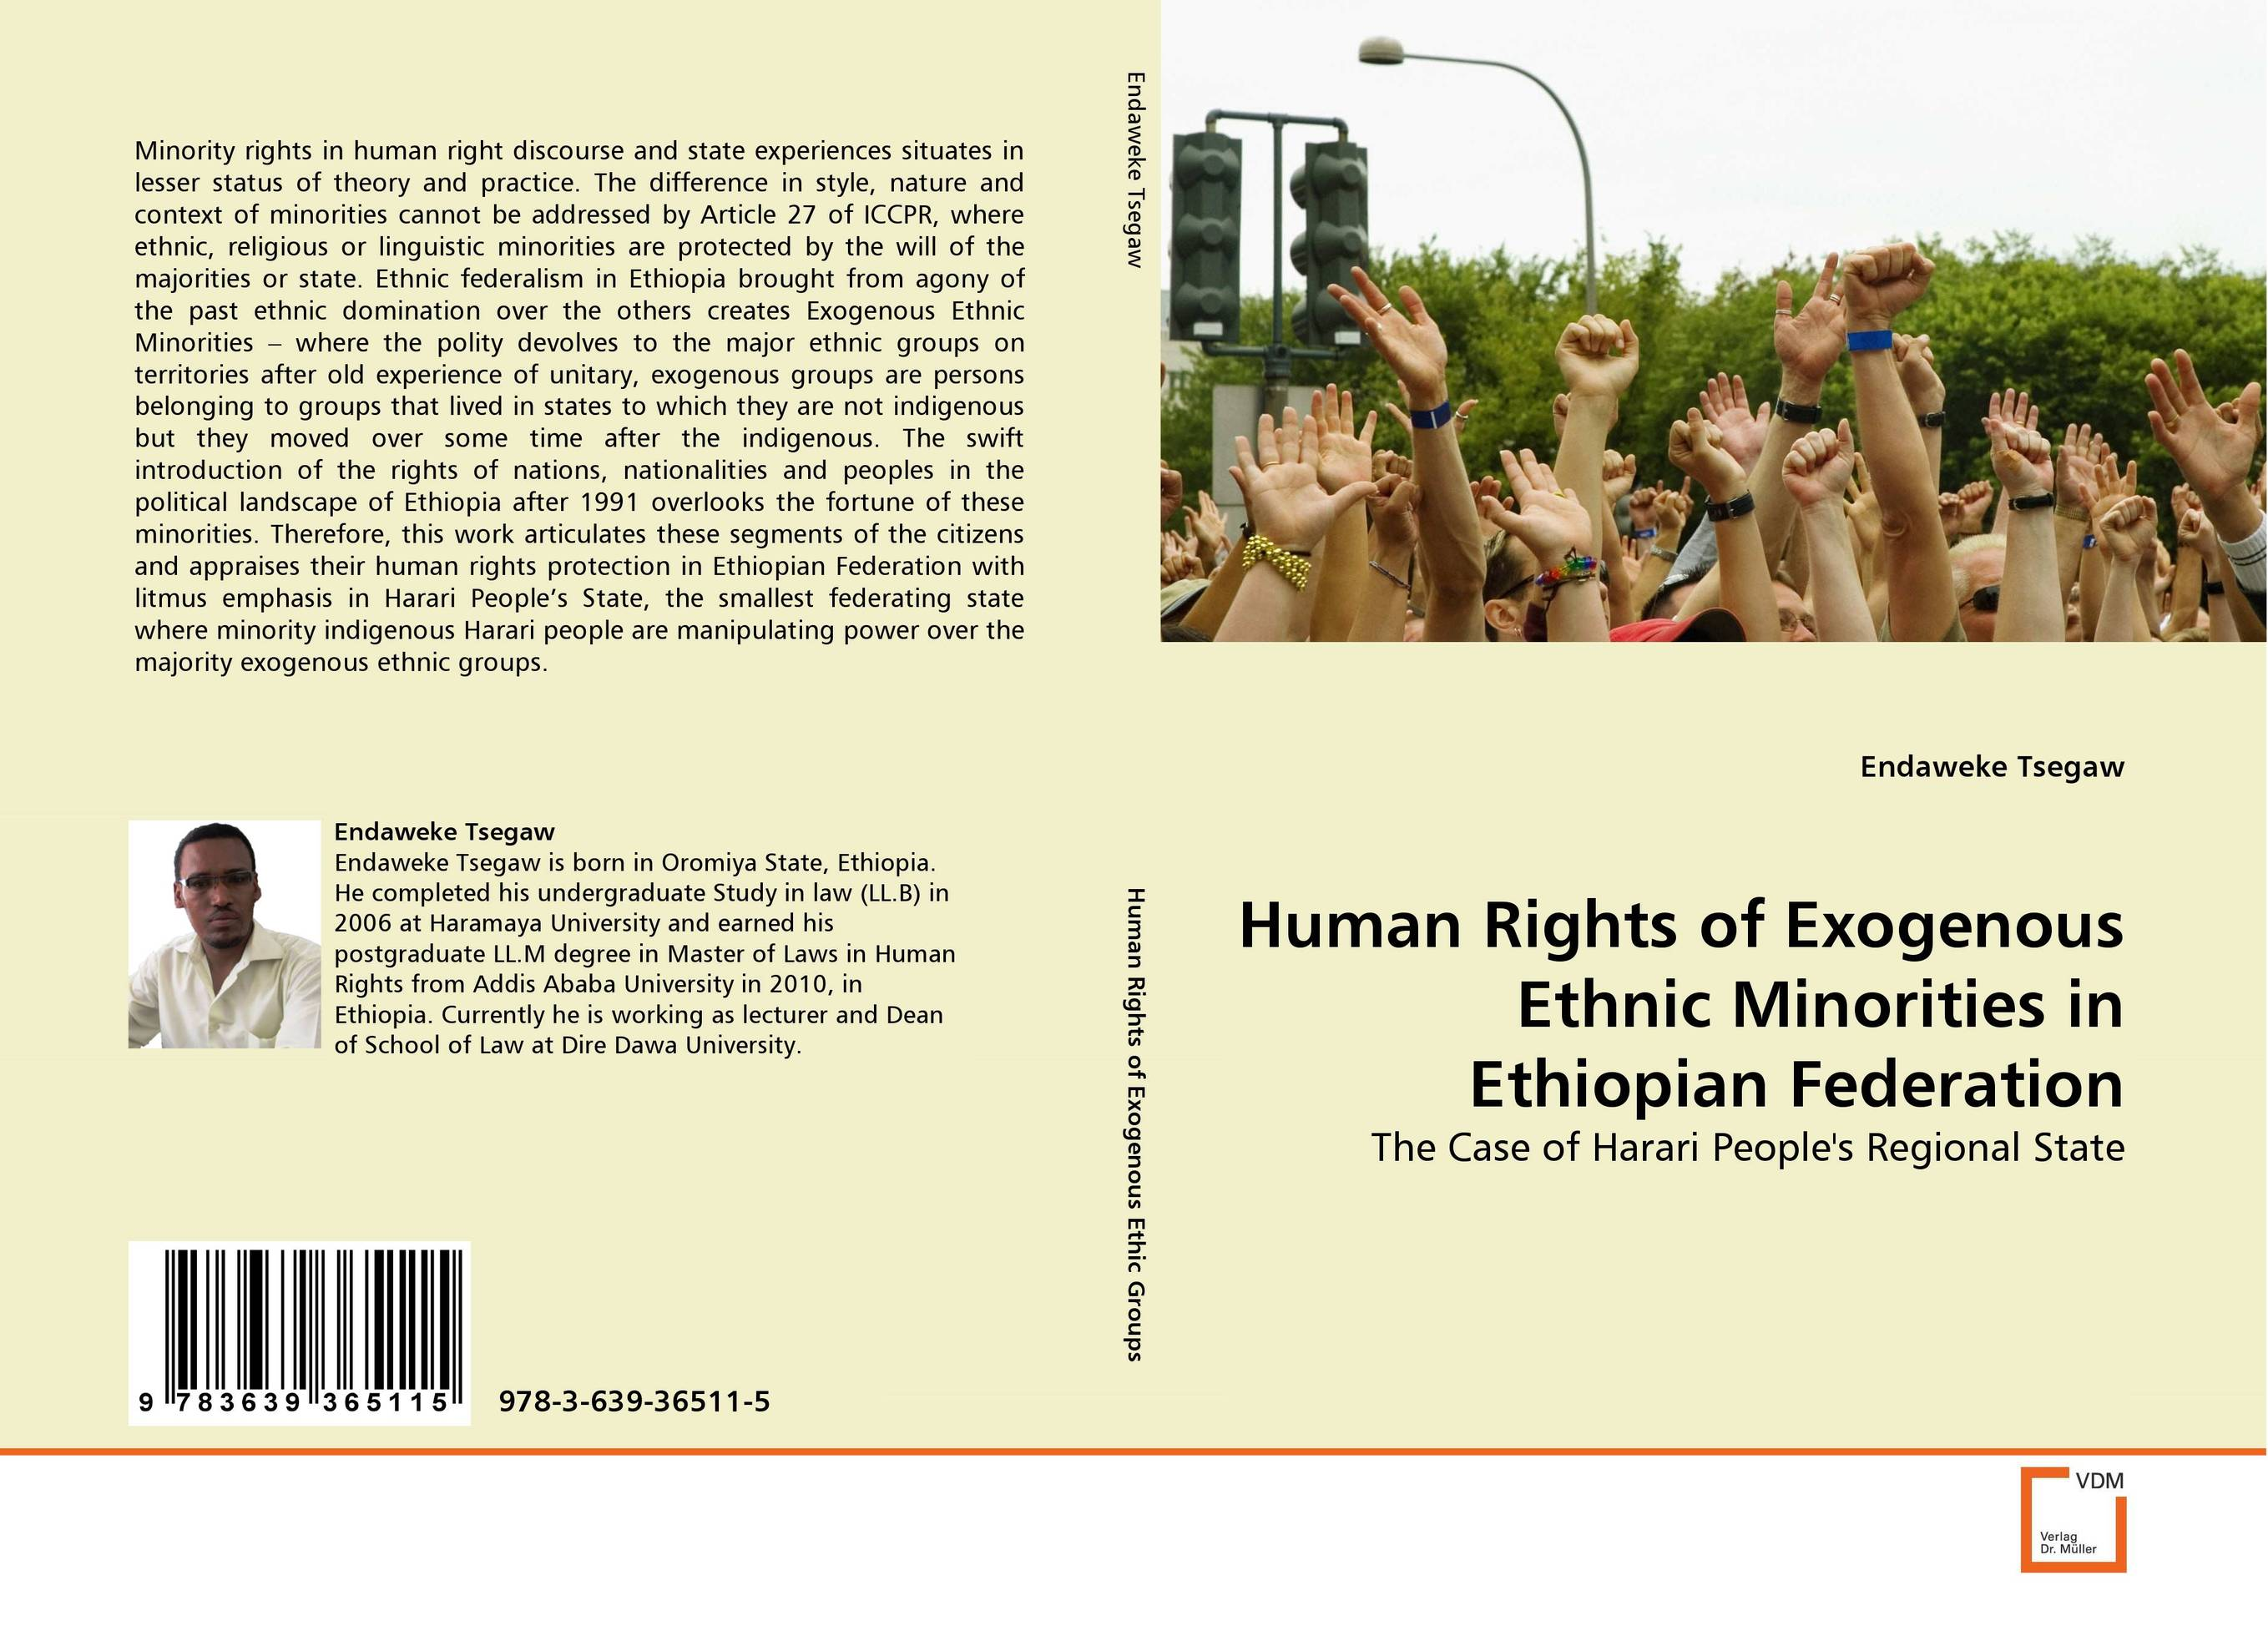 Human Rights of Exogenous Ethnic Minorities in Ethiopian Federation the yeon canola honey silky hand cream крем для рук с экстрактом меда канола 50 мл